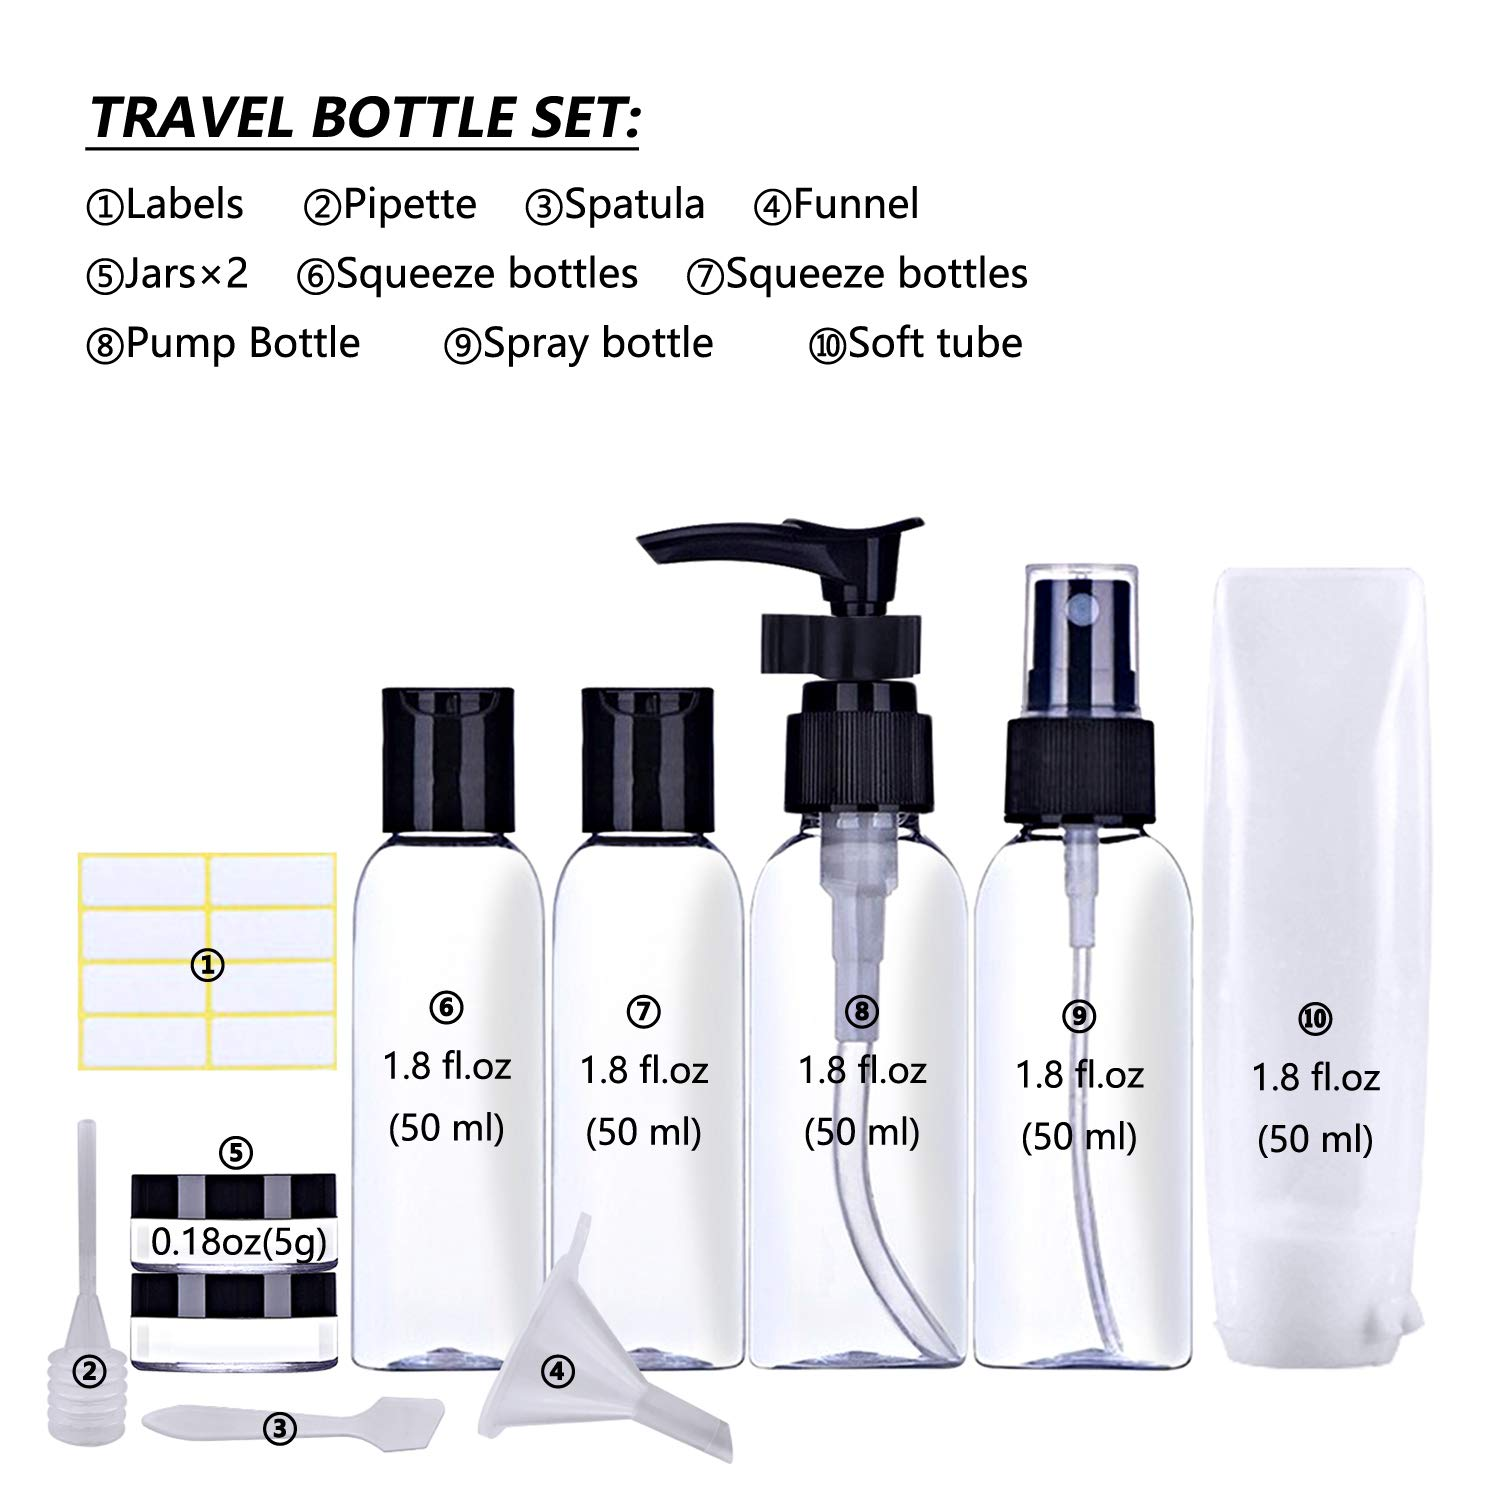 12 in 1 Travel Bottles TSA Approved Leak-Proof Refillable Travel Bottle Set with Labels and Clear Toiletry Bag for Shampoo Conditioner Liquids 3-1-1 Carry-On Luggage Compliant for Airplane - Women